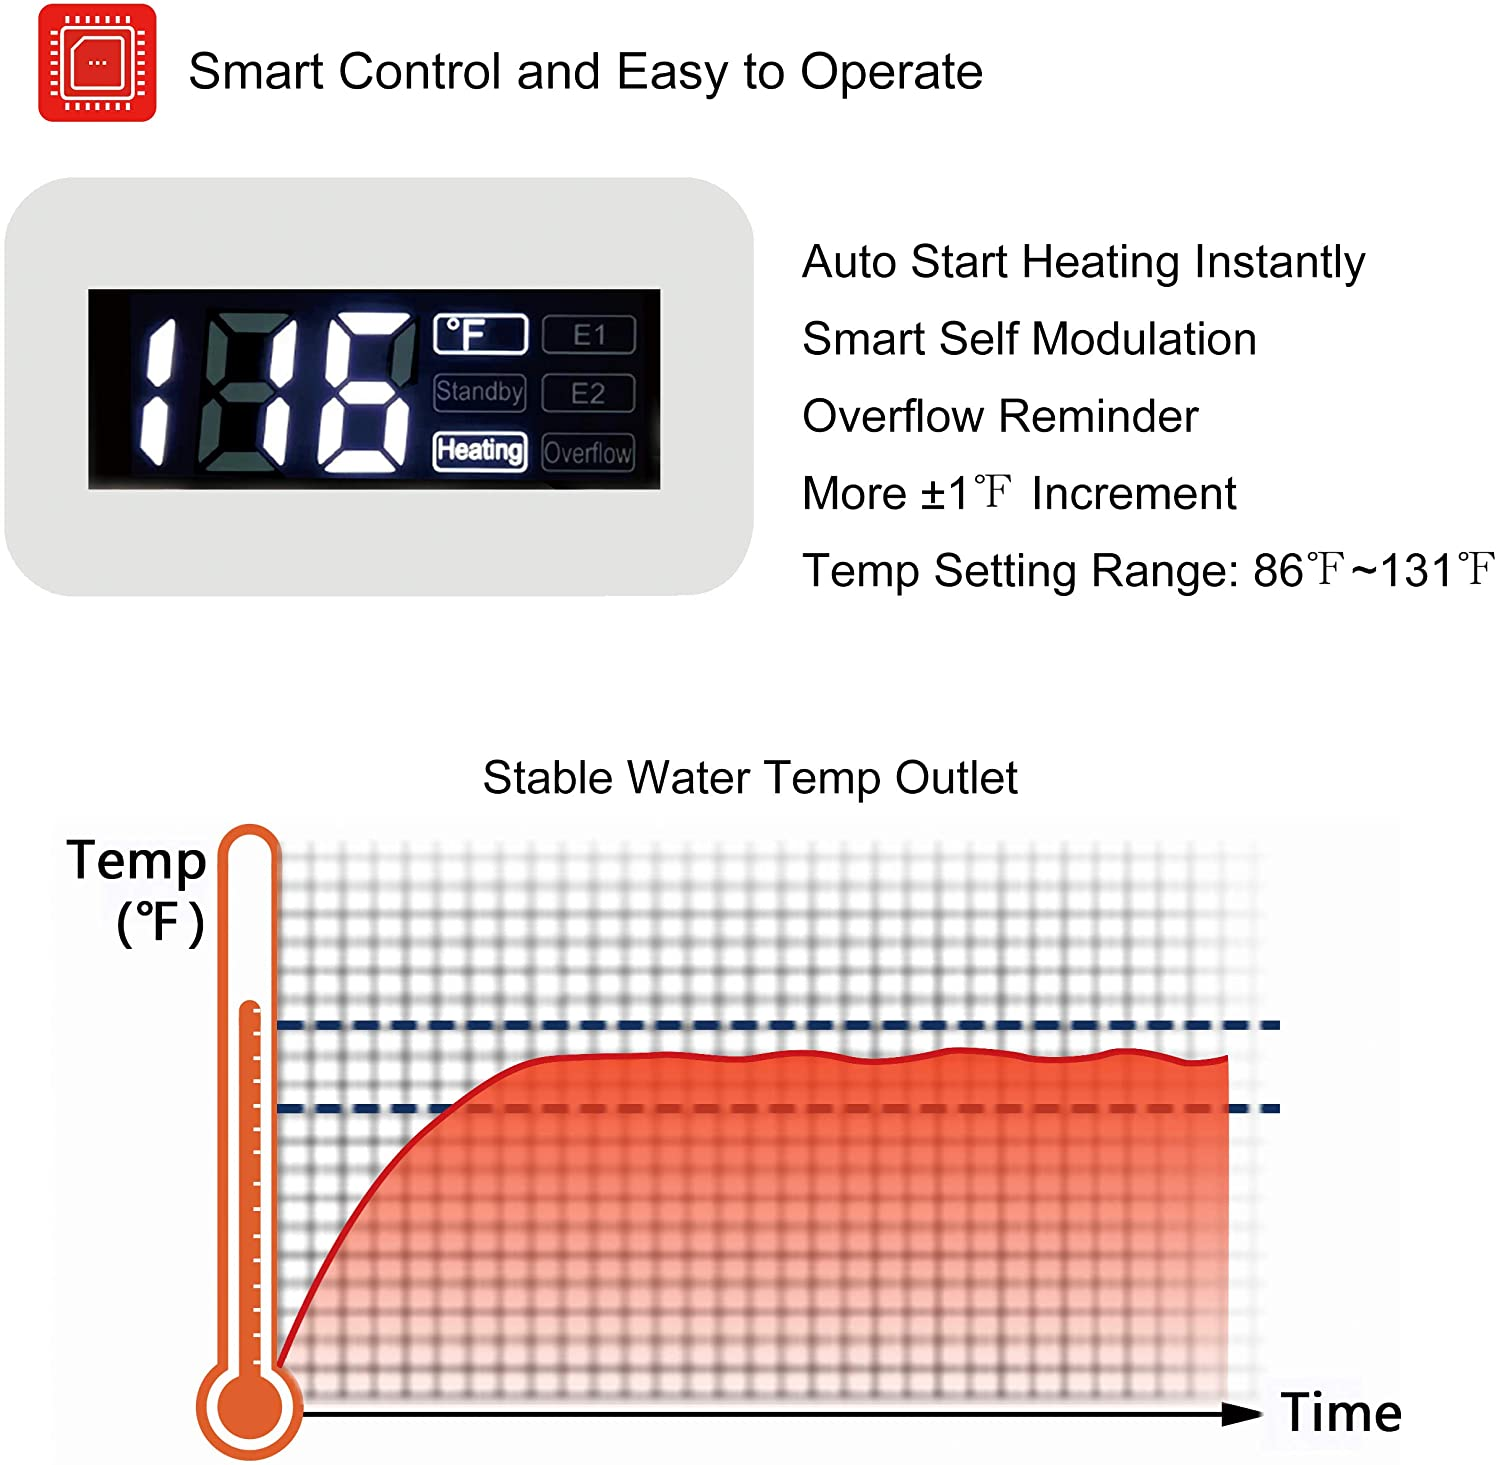 Tankless Water Heater Electric ECOTOUCH 9KW 240V on Demand Water Heater Self-Modulating Instant Hot Water Heater Point Of Use Water Heater ECO90 White - -